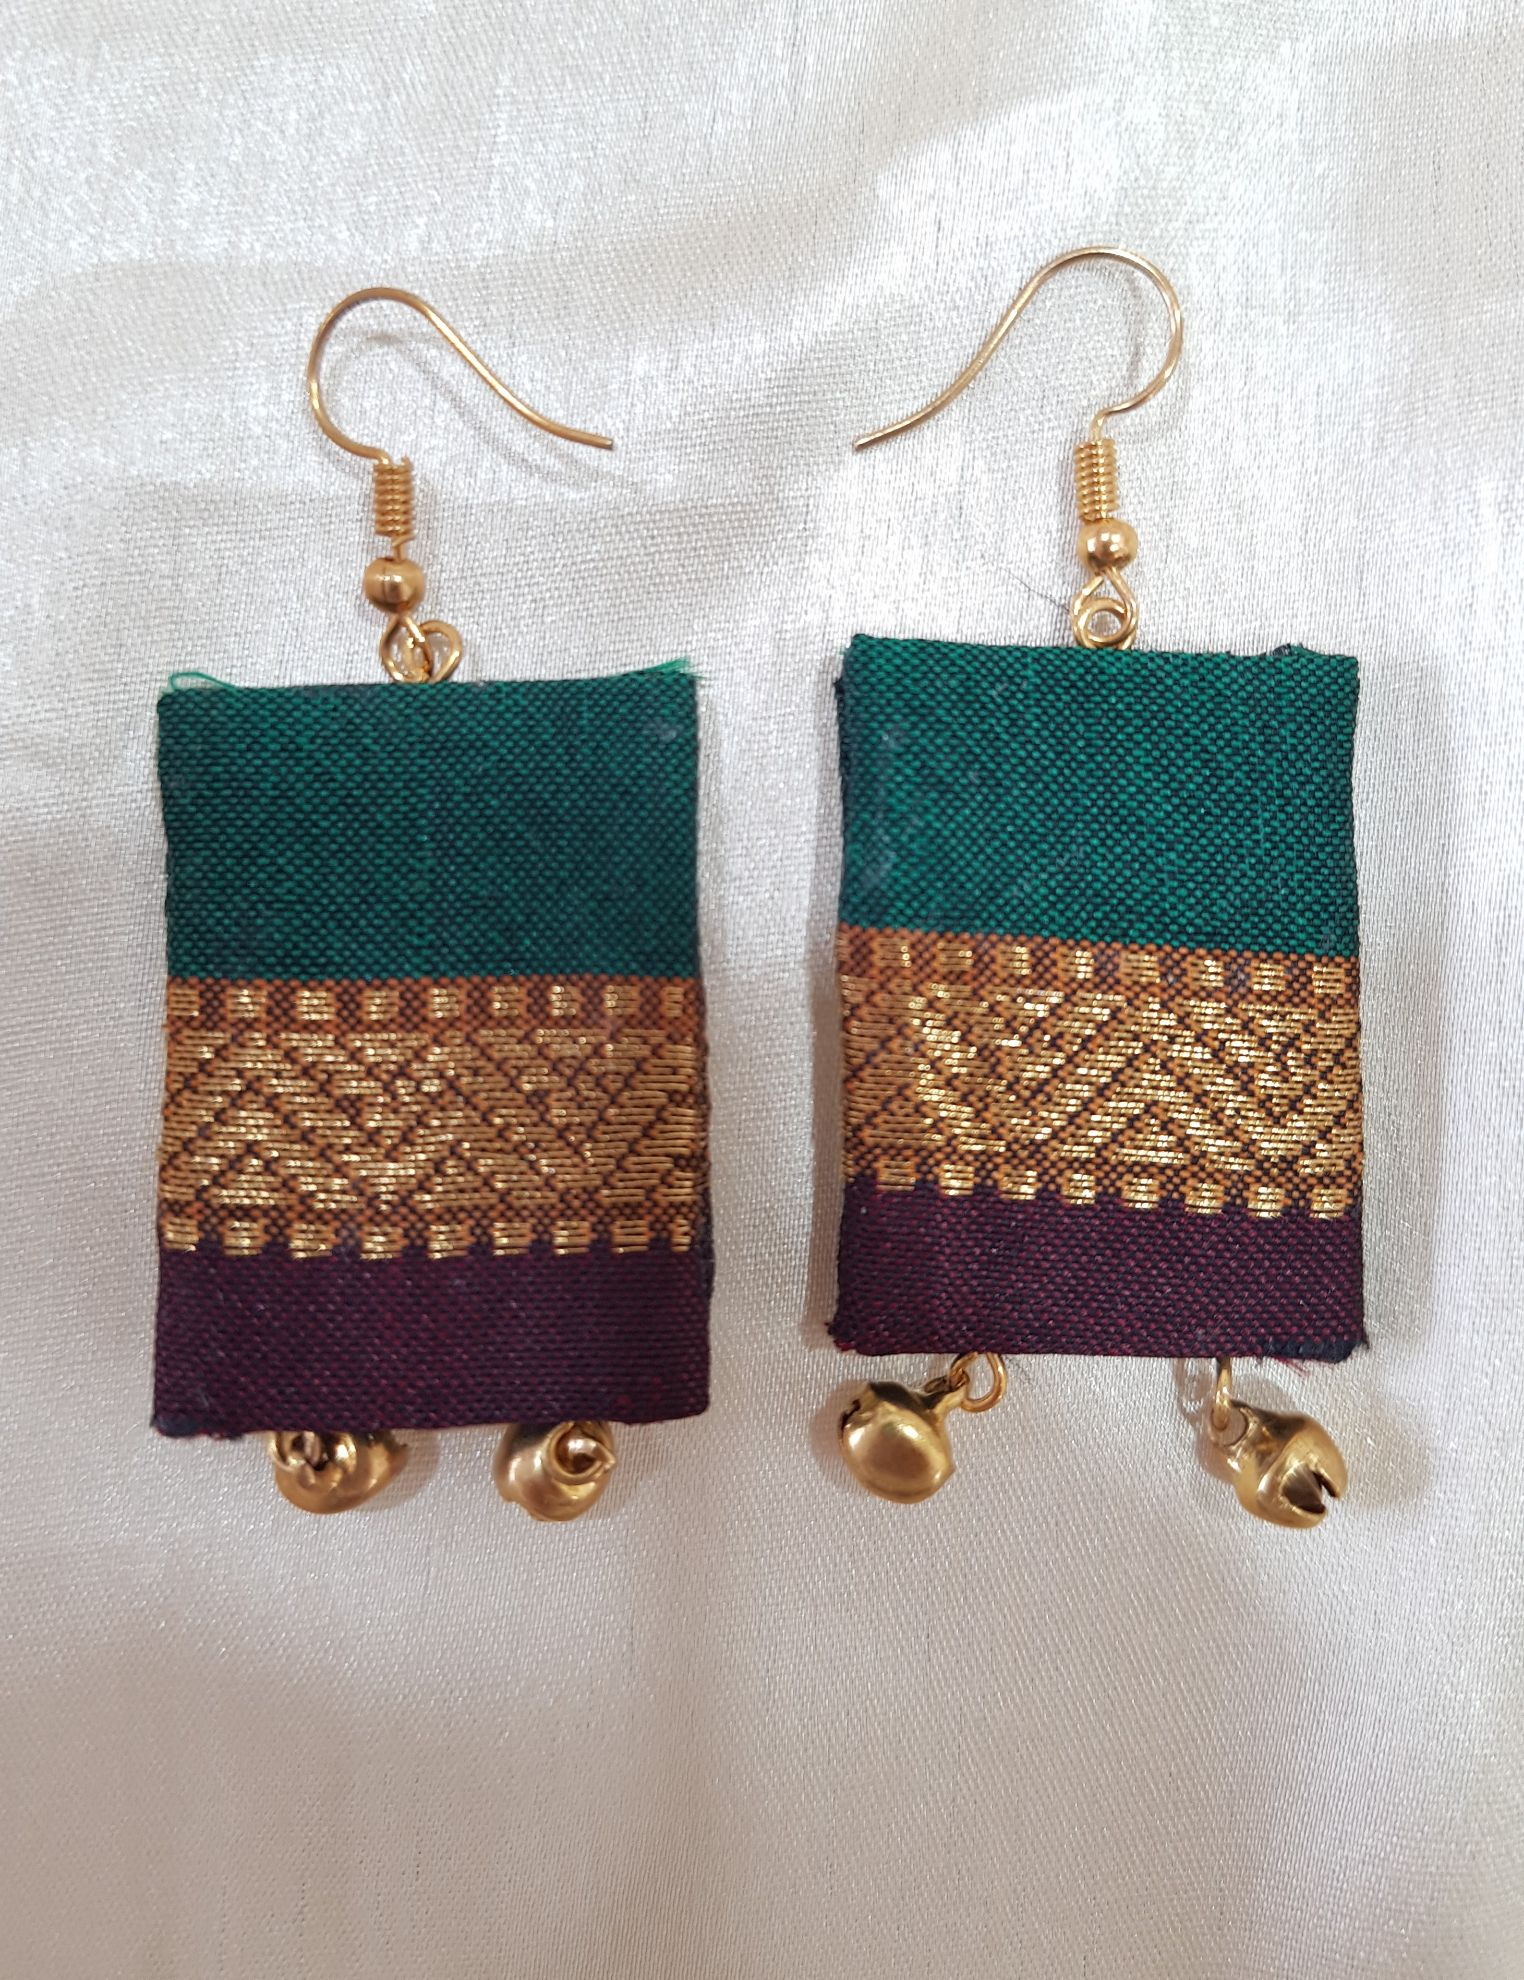 Handcrafted Fabric Jari Work Jewellery Set Green Brown : Picture